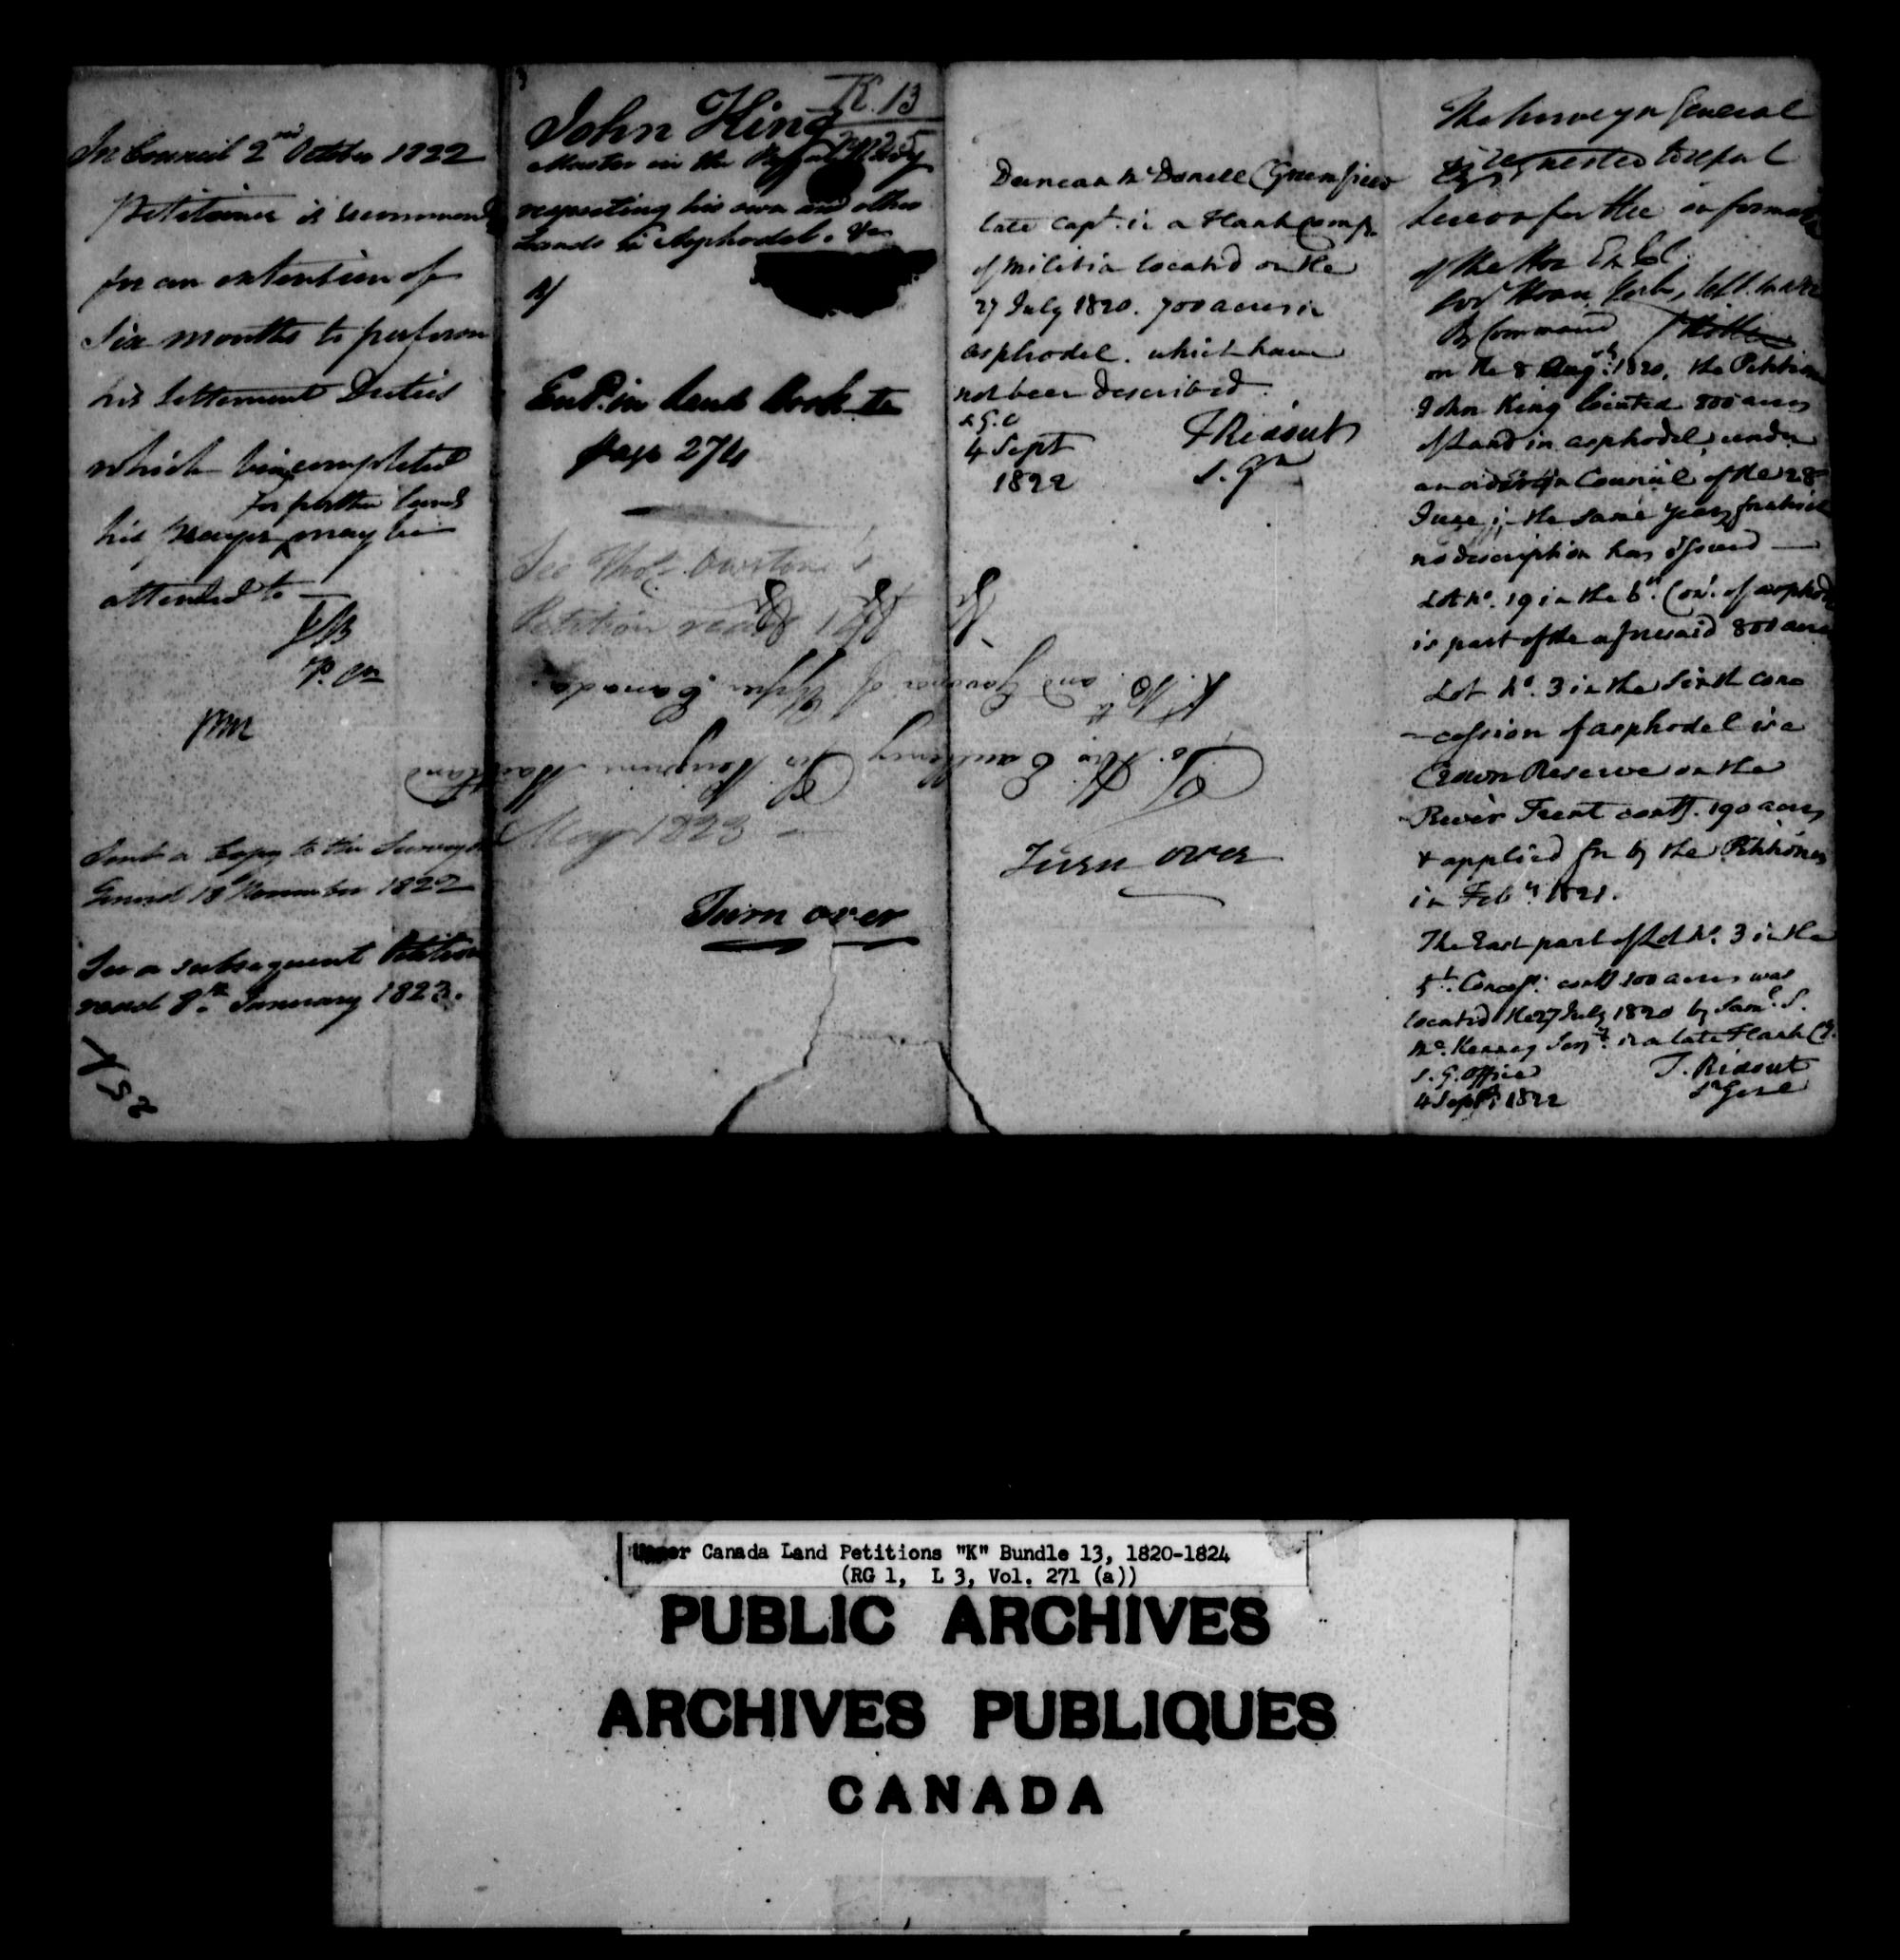 Title: Upper Canada Land Petitions (1763-1865) - Mikan Number: 205131 - Microform: c-2118